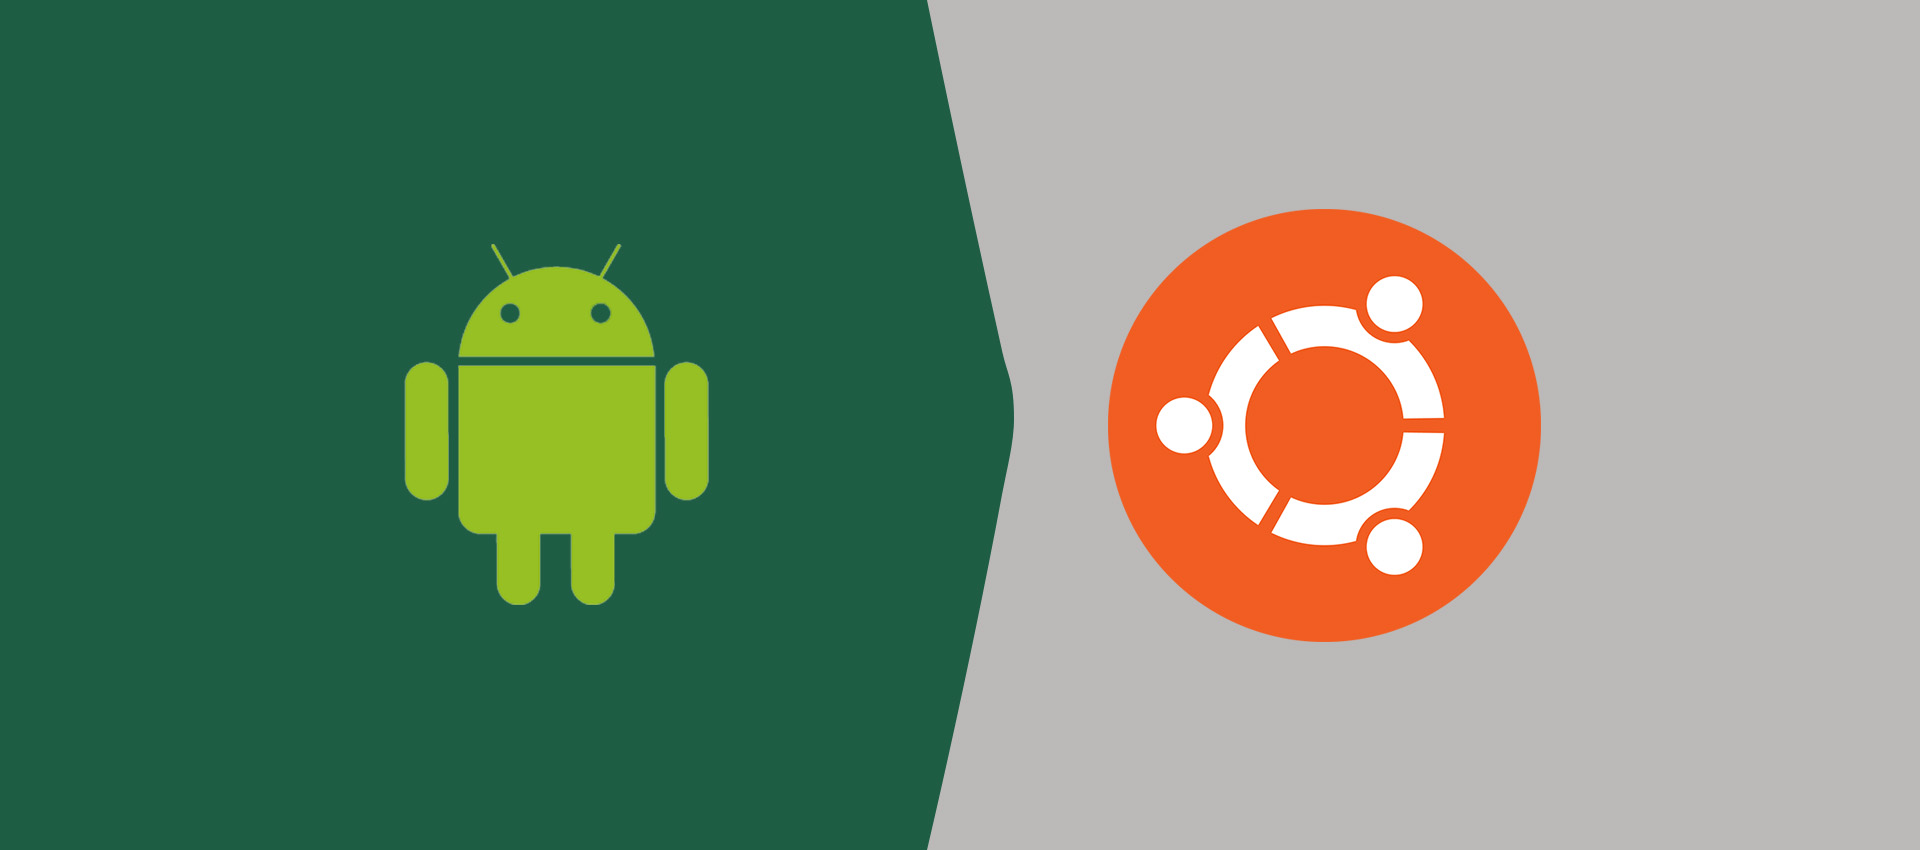 How To Install Android SDK Tools On Ubuntu 20.04